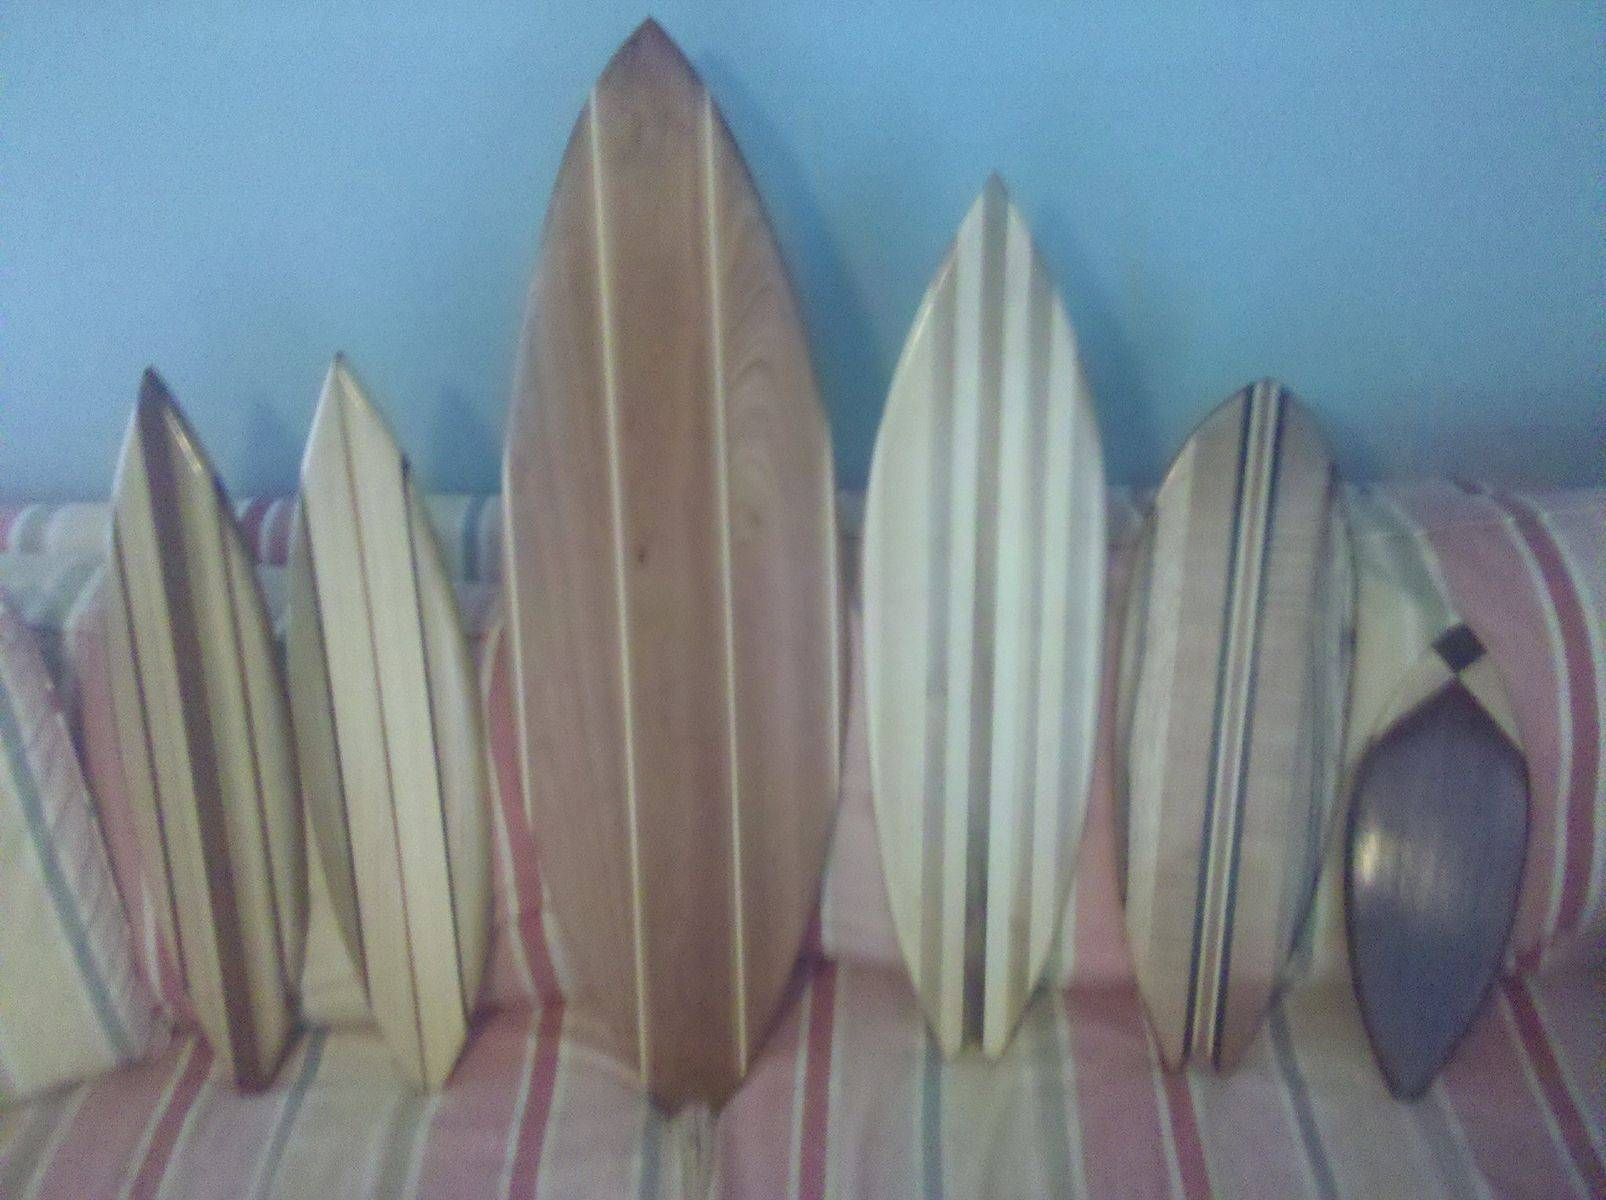 Showing Photos of Decorative Surfboard Wall Art (View 20 of 25 Photos)